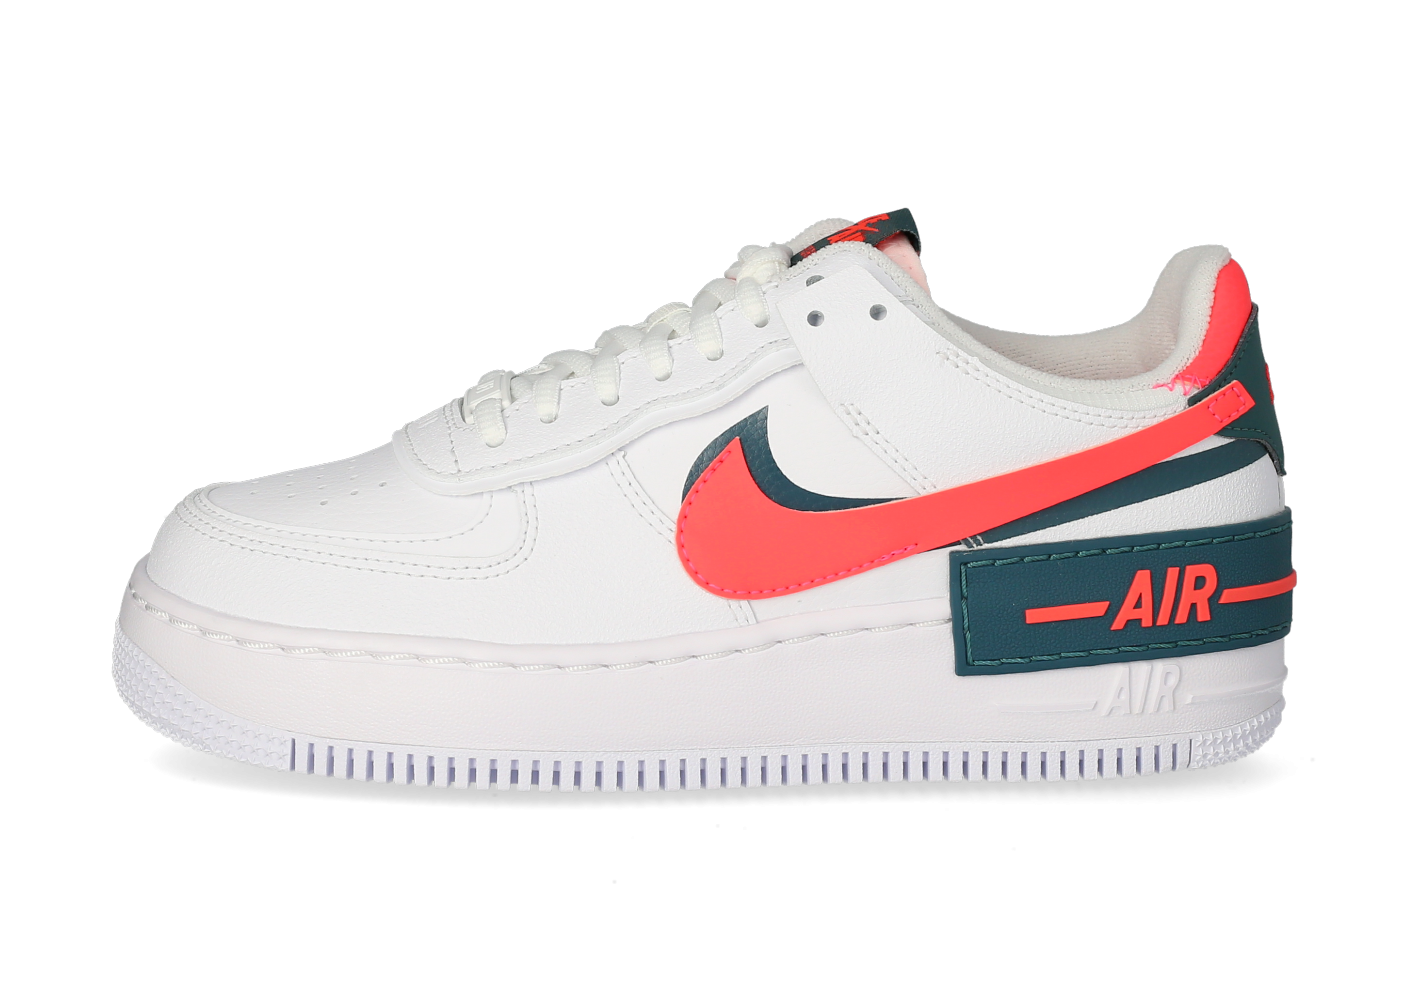 Nike Air Force 1 Shadow Femme Solar Red - Chaussures Baskets femme ...